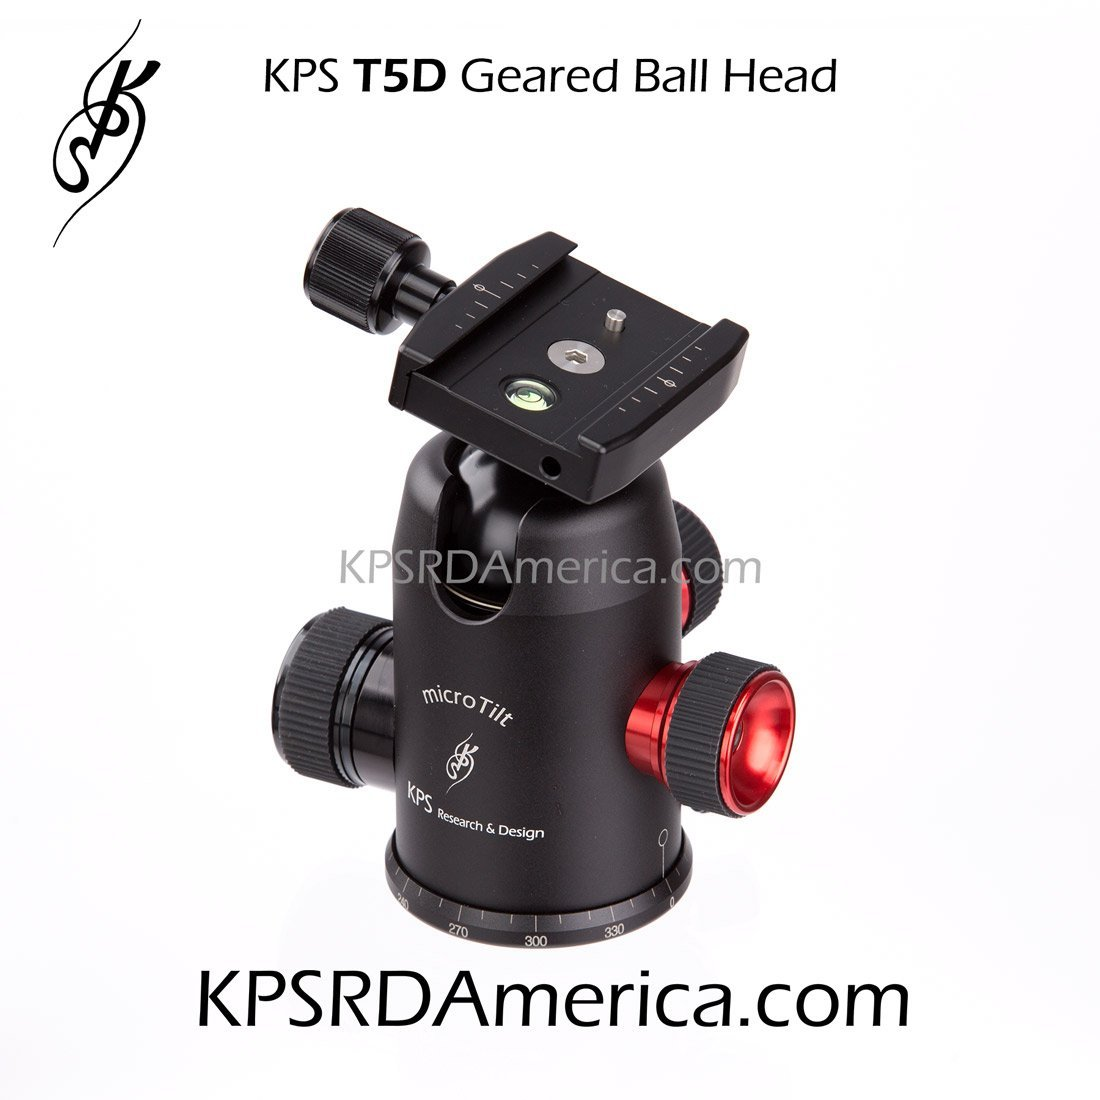 KPS R&D T5D Geared Ball Head with microTilt precision adjustments for Professional Photographers